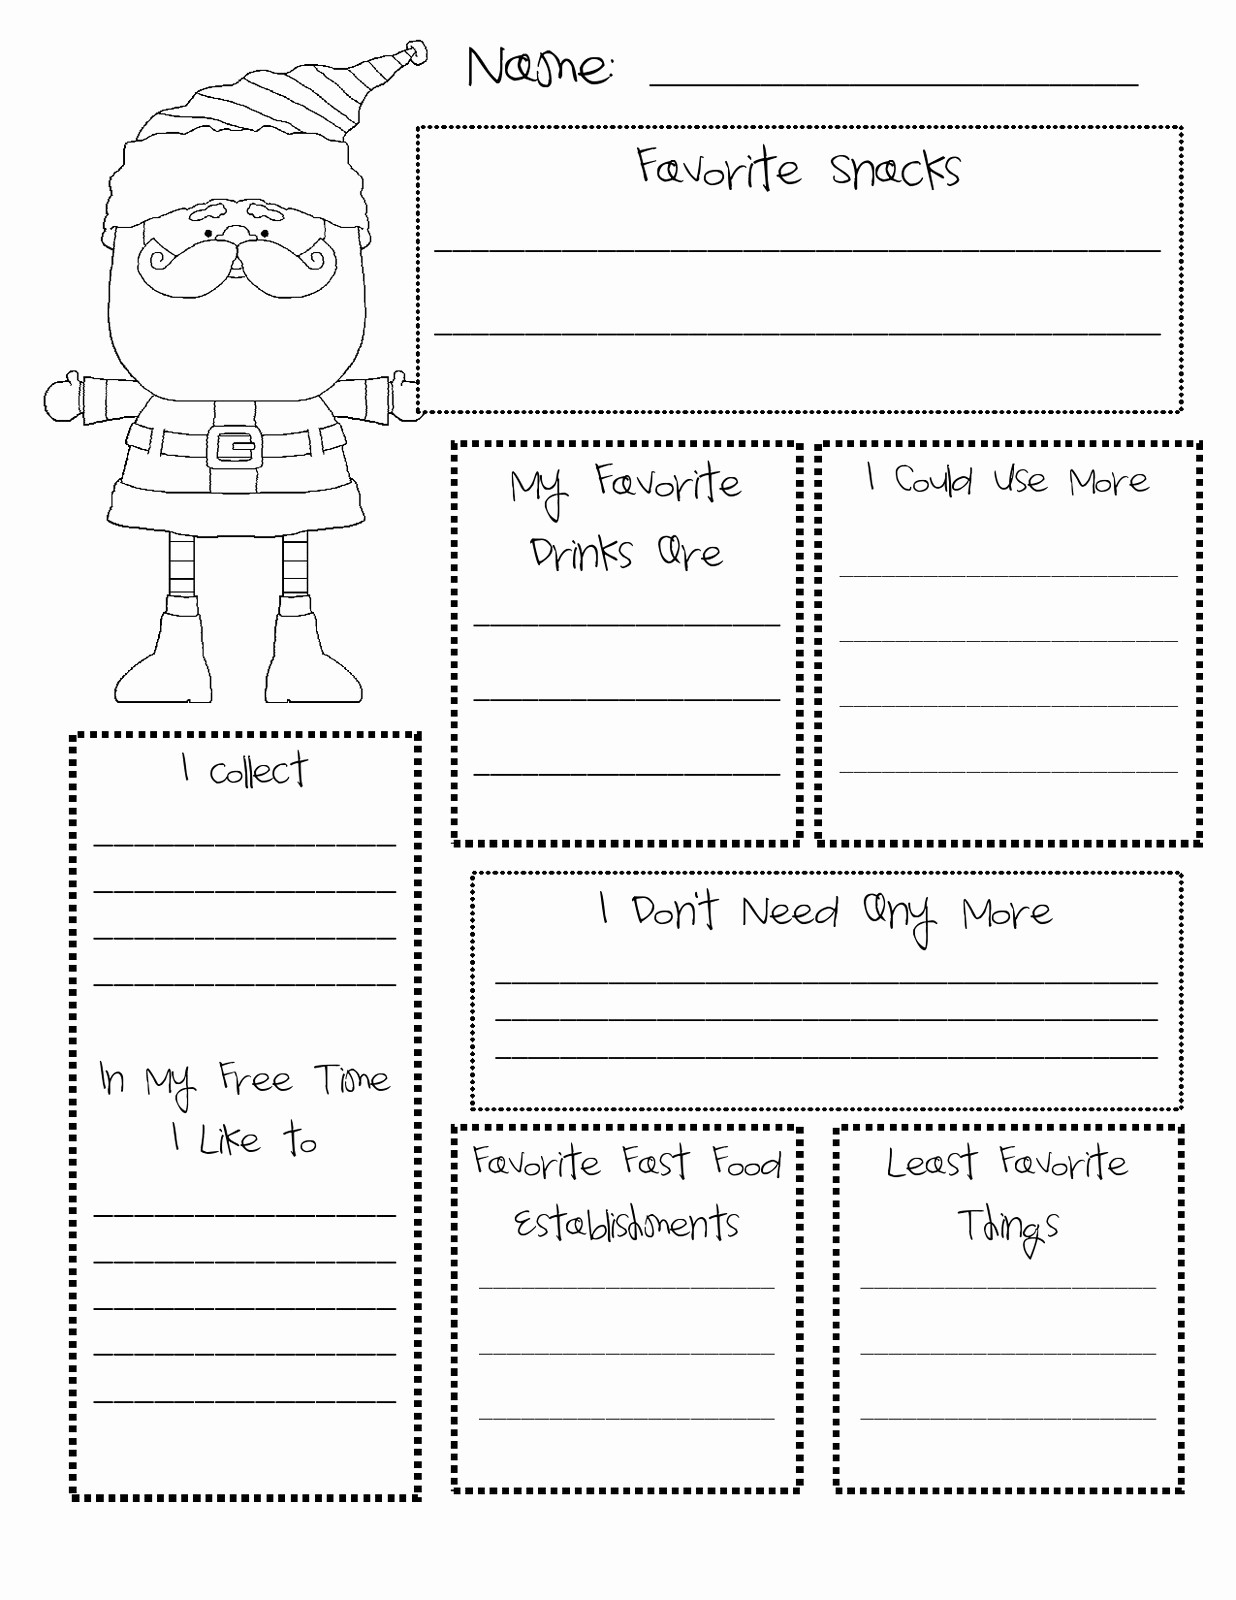 Secret Santa List for Work Best Of Free Printable Secret Santa form